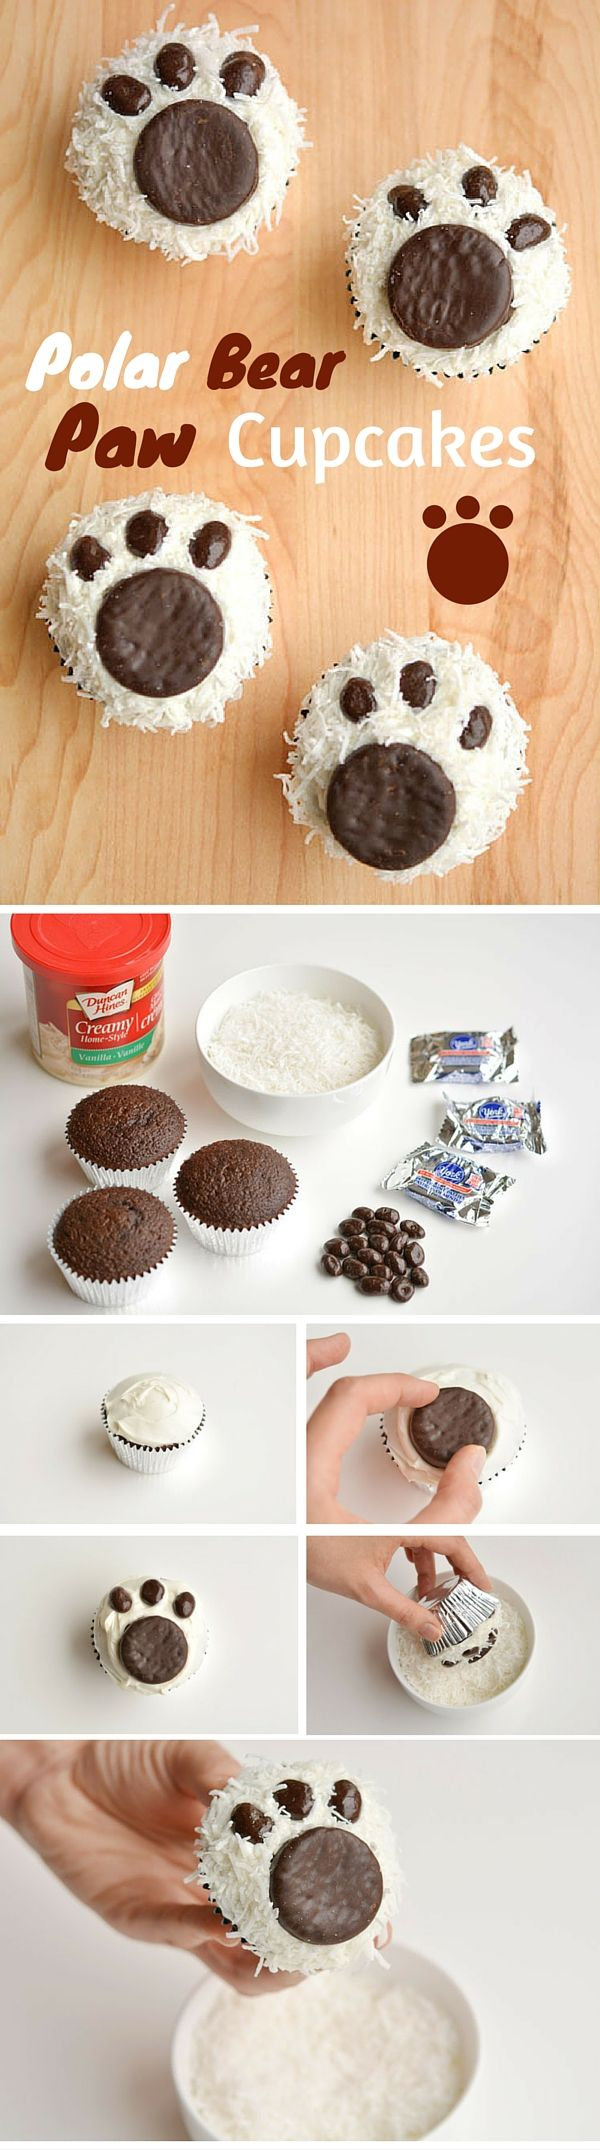 Get the recipe ♥ Polar Bear Paw Cupcakes #recipes @recipes_to_go